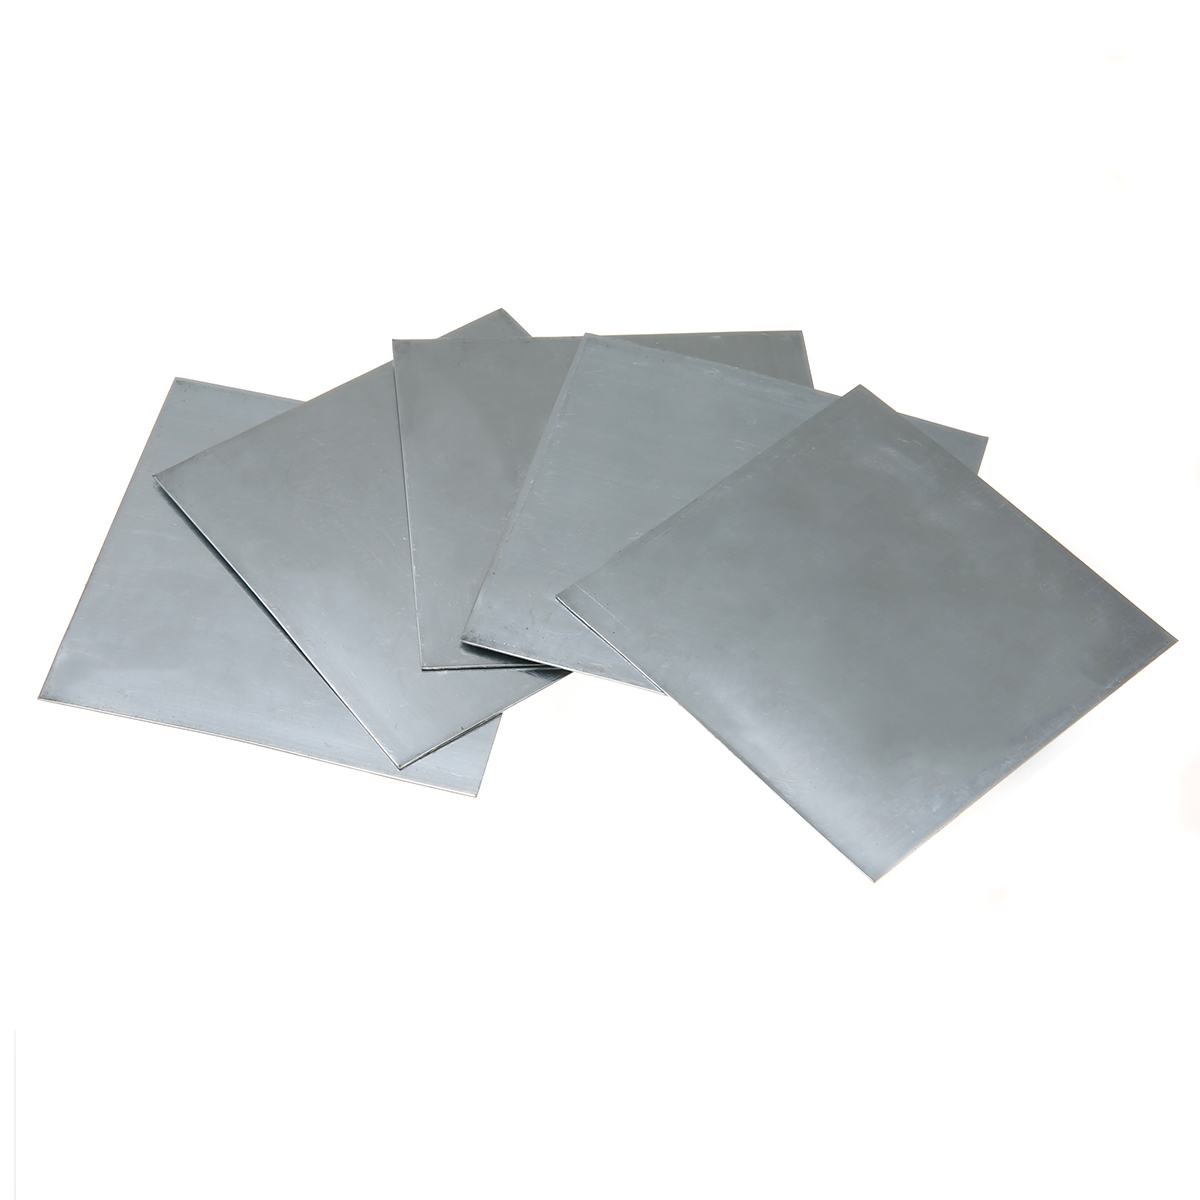 5pcs High-purity Pure Zinc Zn Sheet Plate 0.5mm Thickness Metal Foil 100mmx100mm For Power Tools tungsten sheet plate for scientific research and experiment high purity